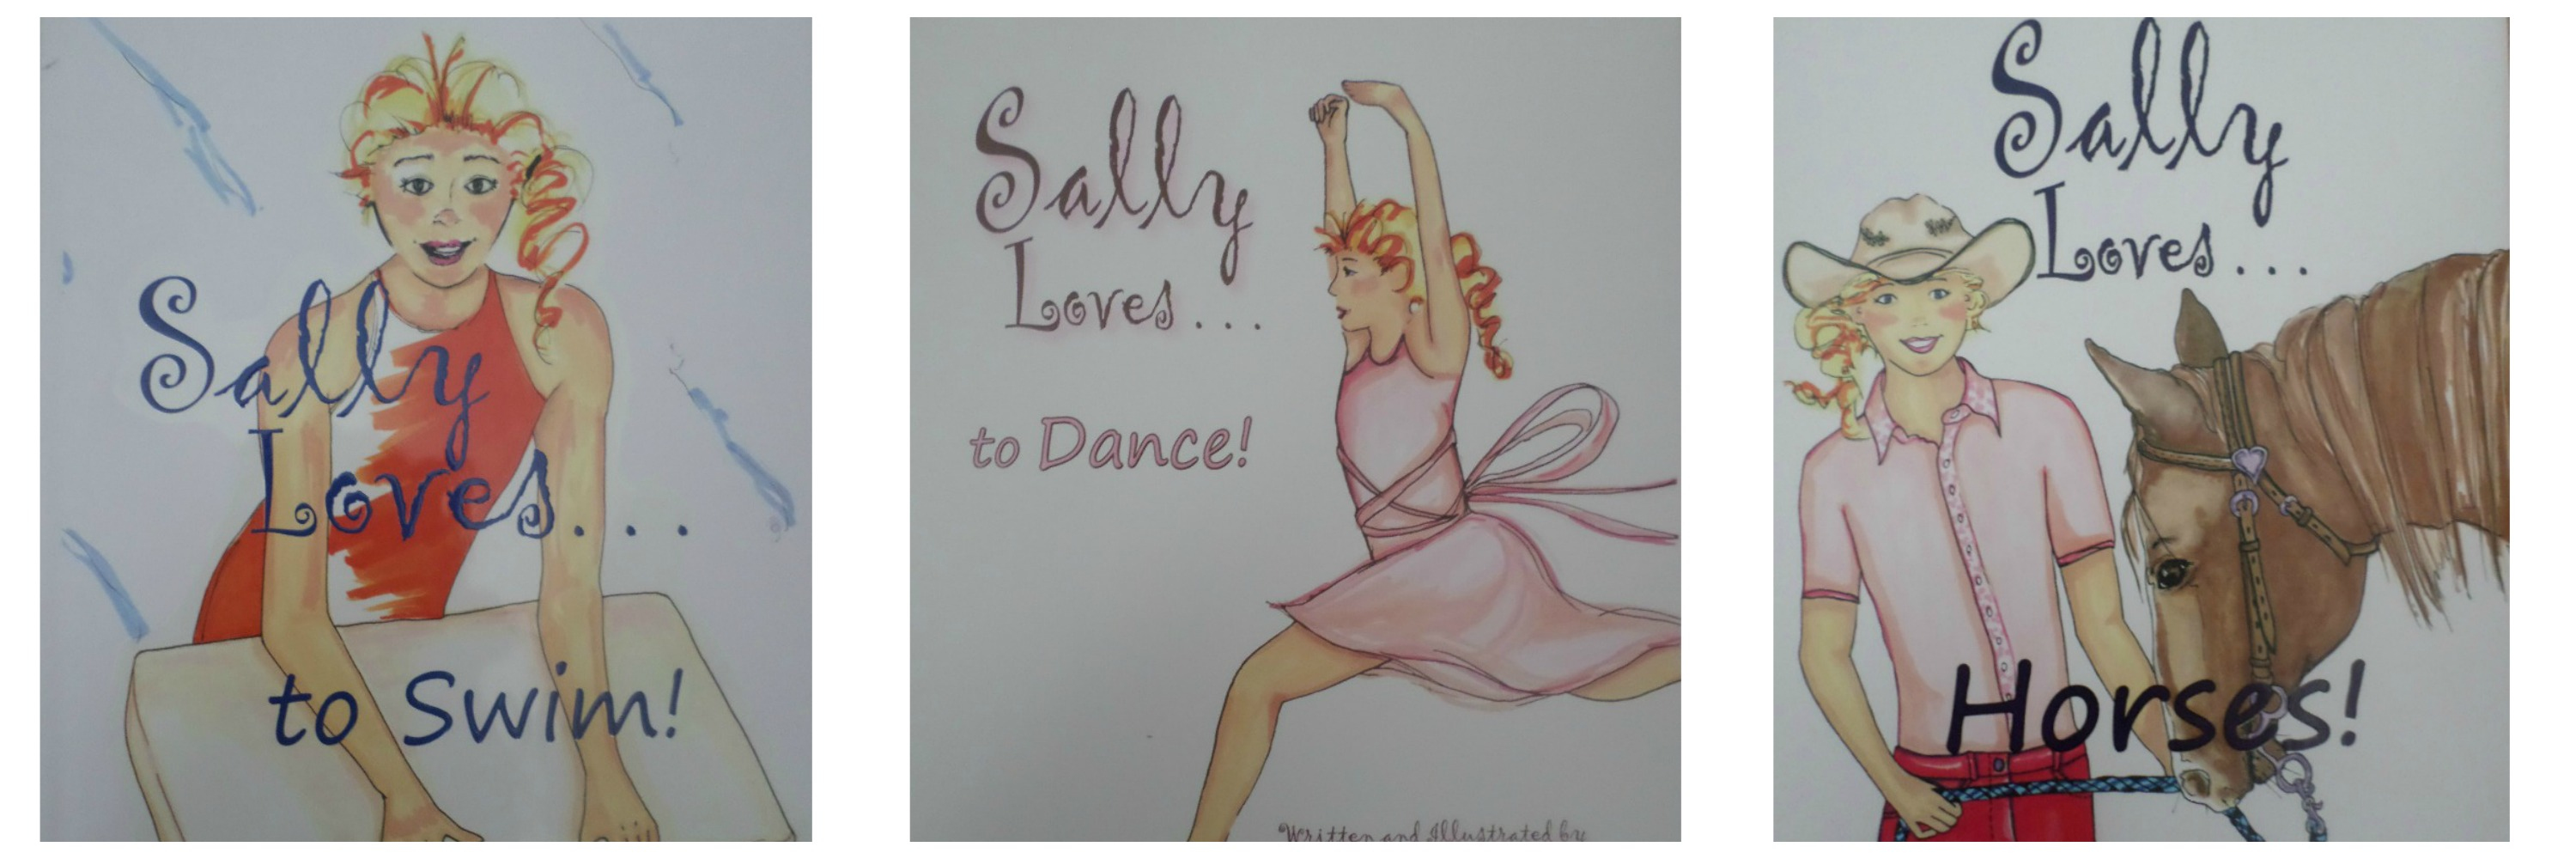 Sally Loves...